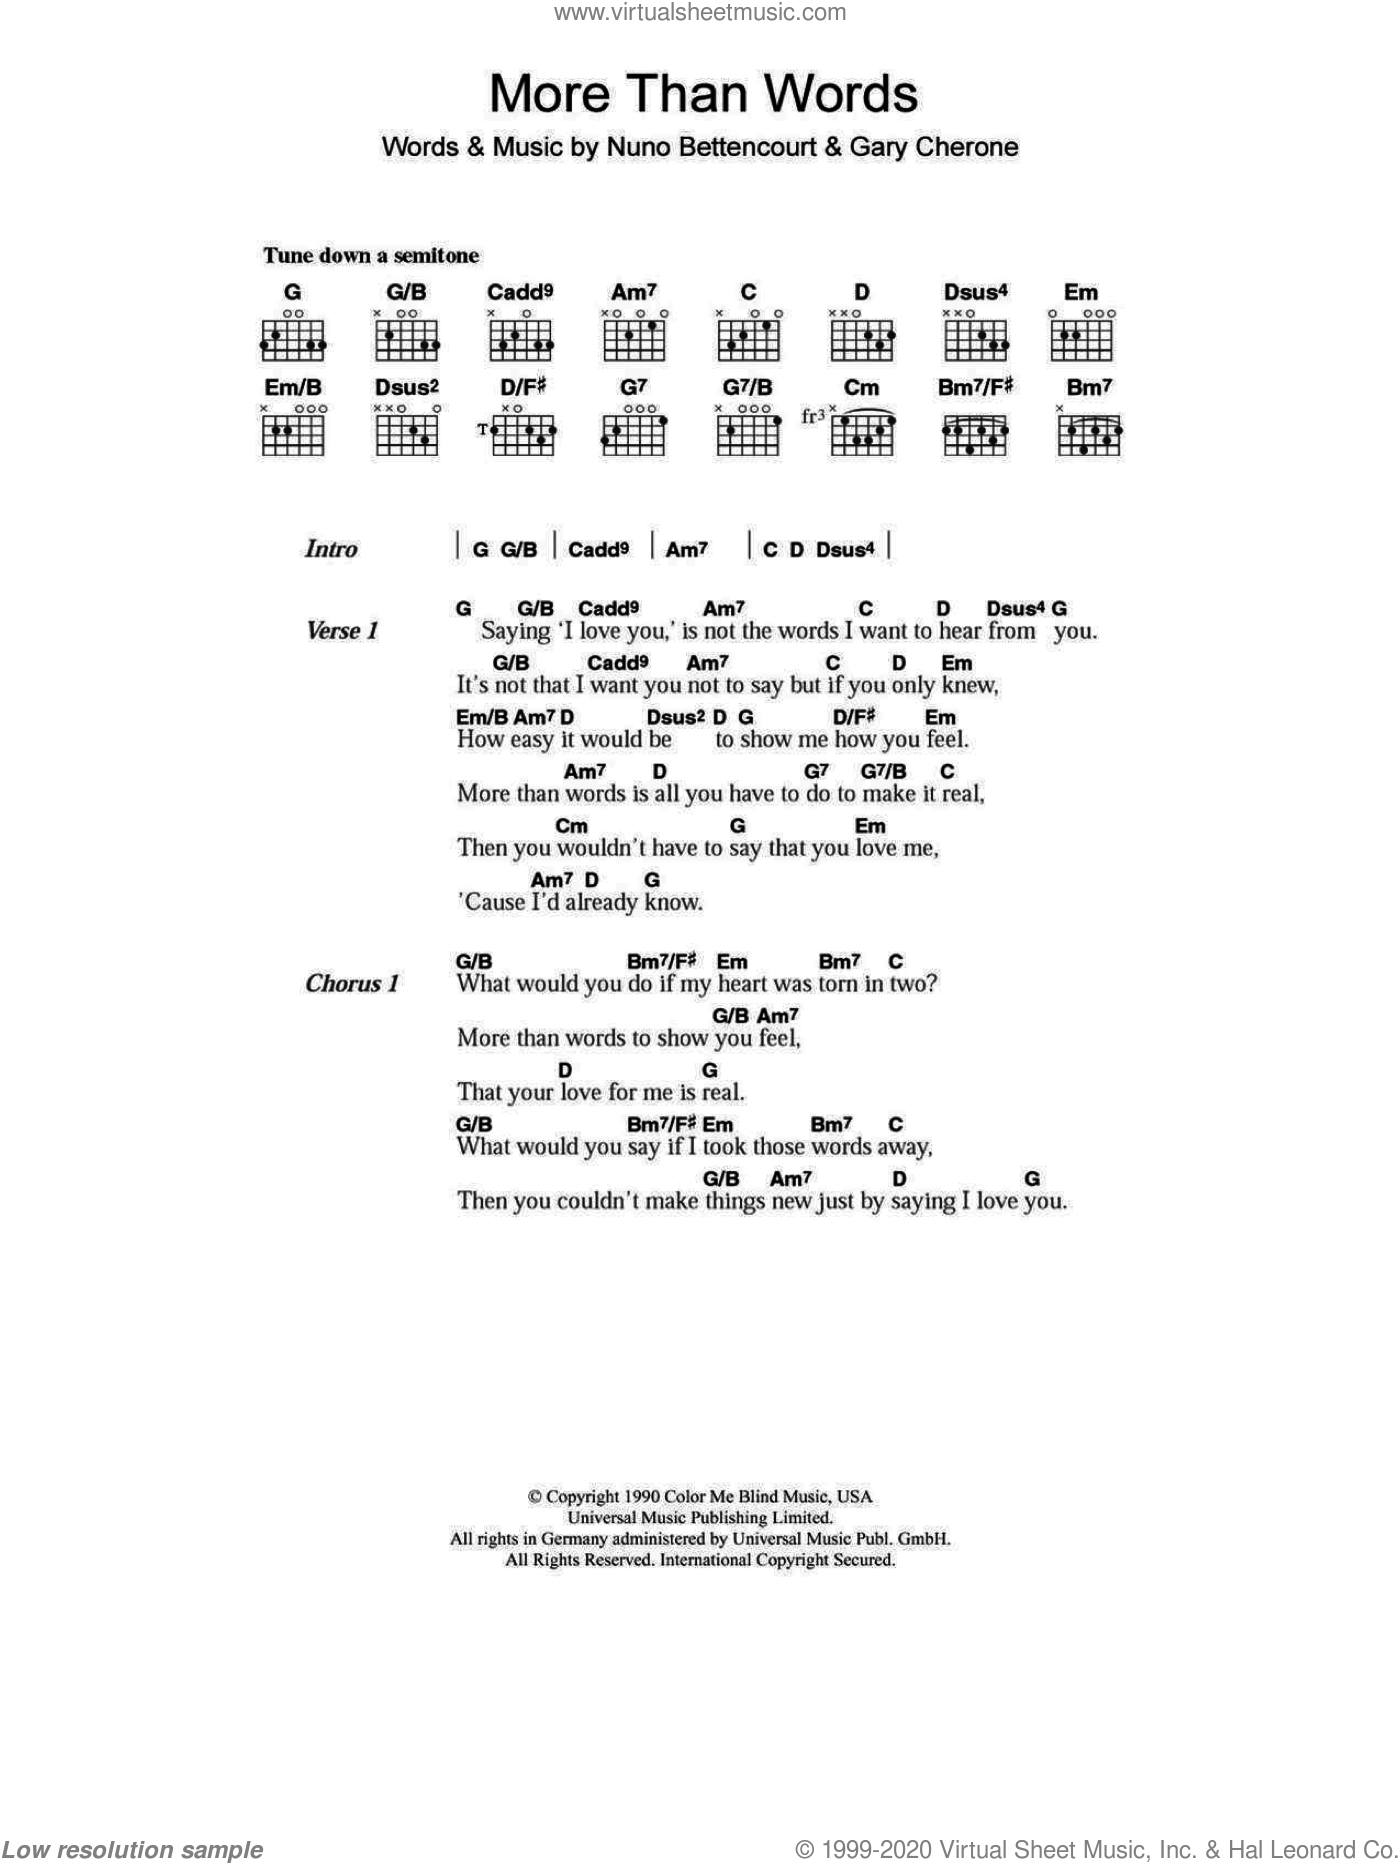 Westlife - More Than Words sheet music for guitar (chords) [PDF]